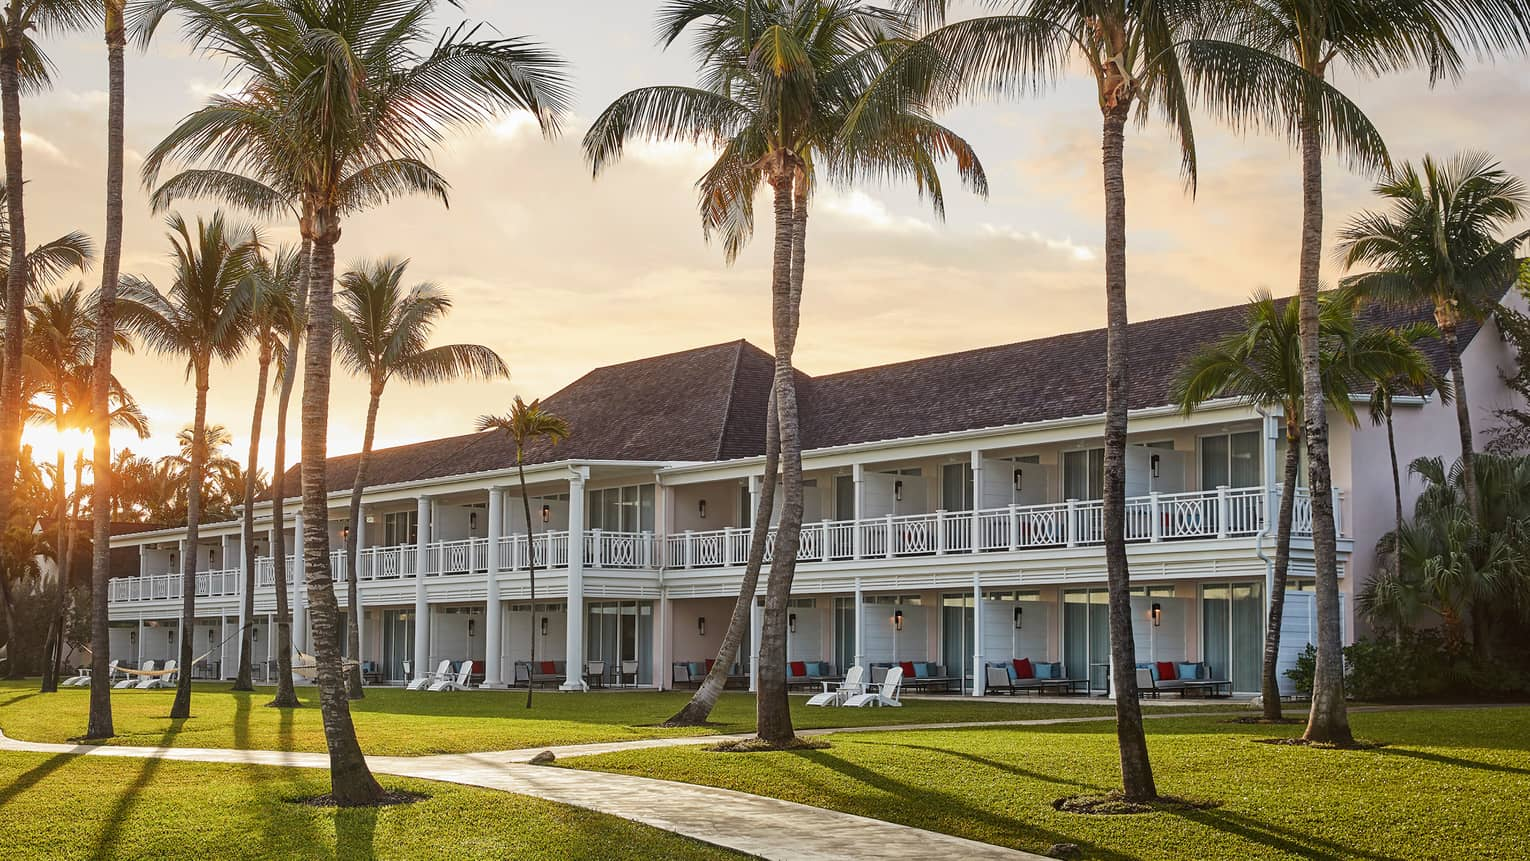 Tall palm trees, sunset over Hartford Wing two-storey white resort building with decorative balconies